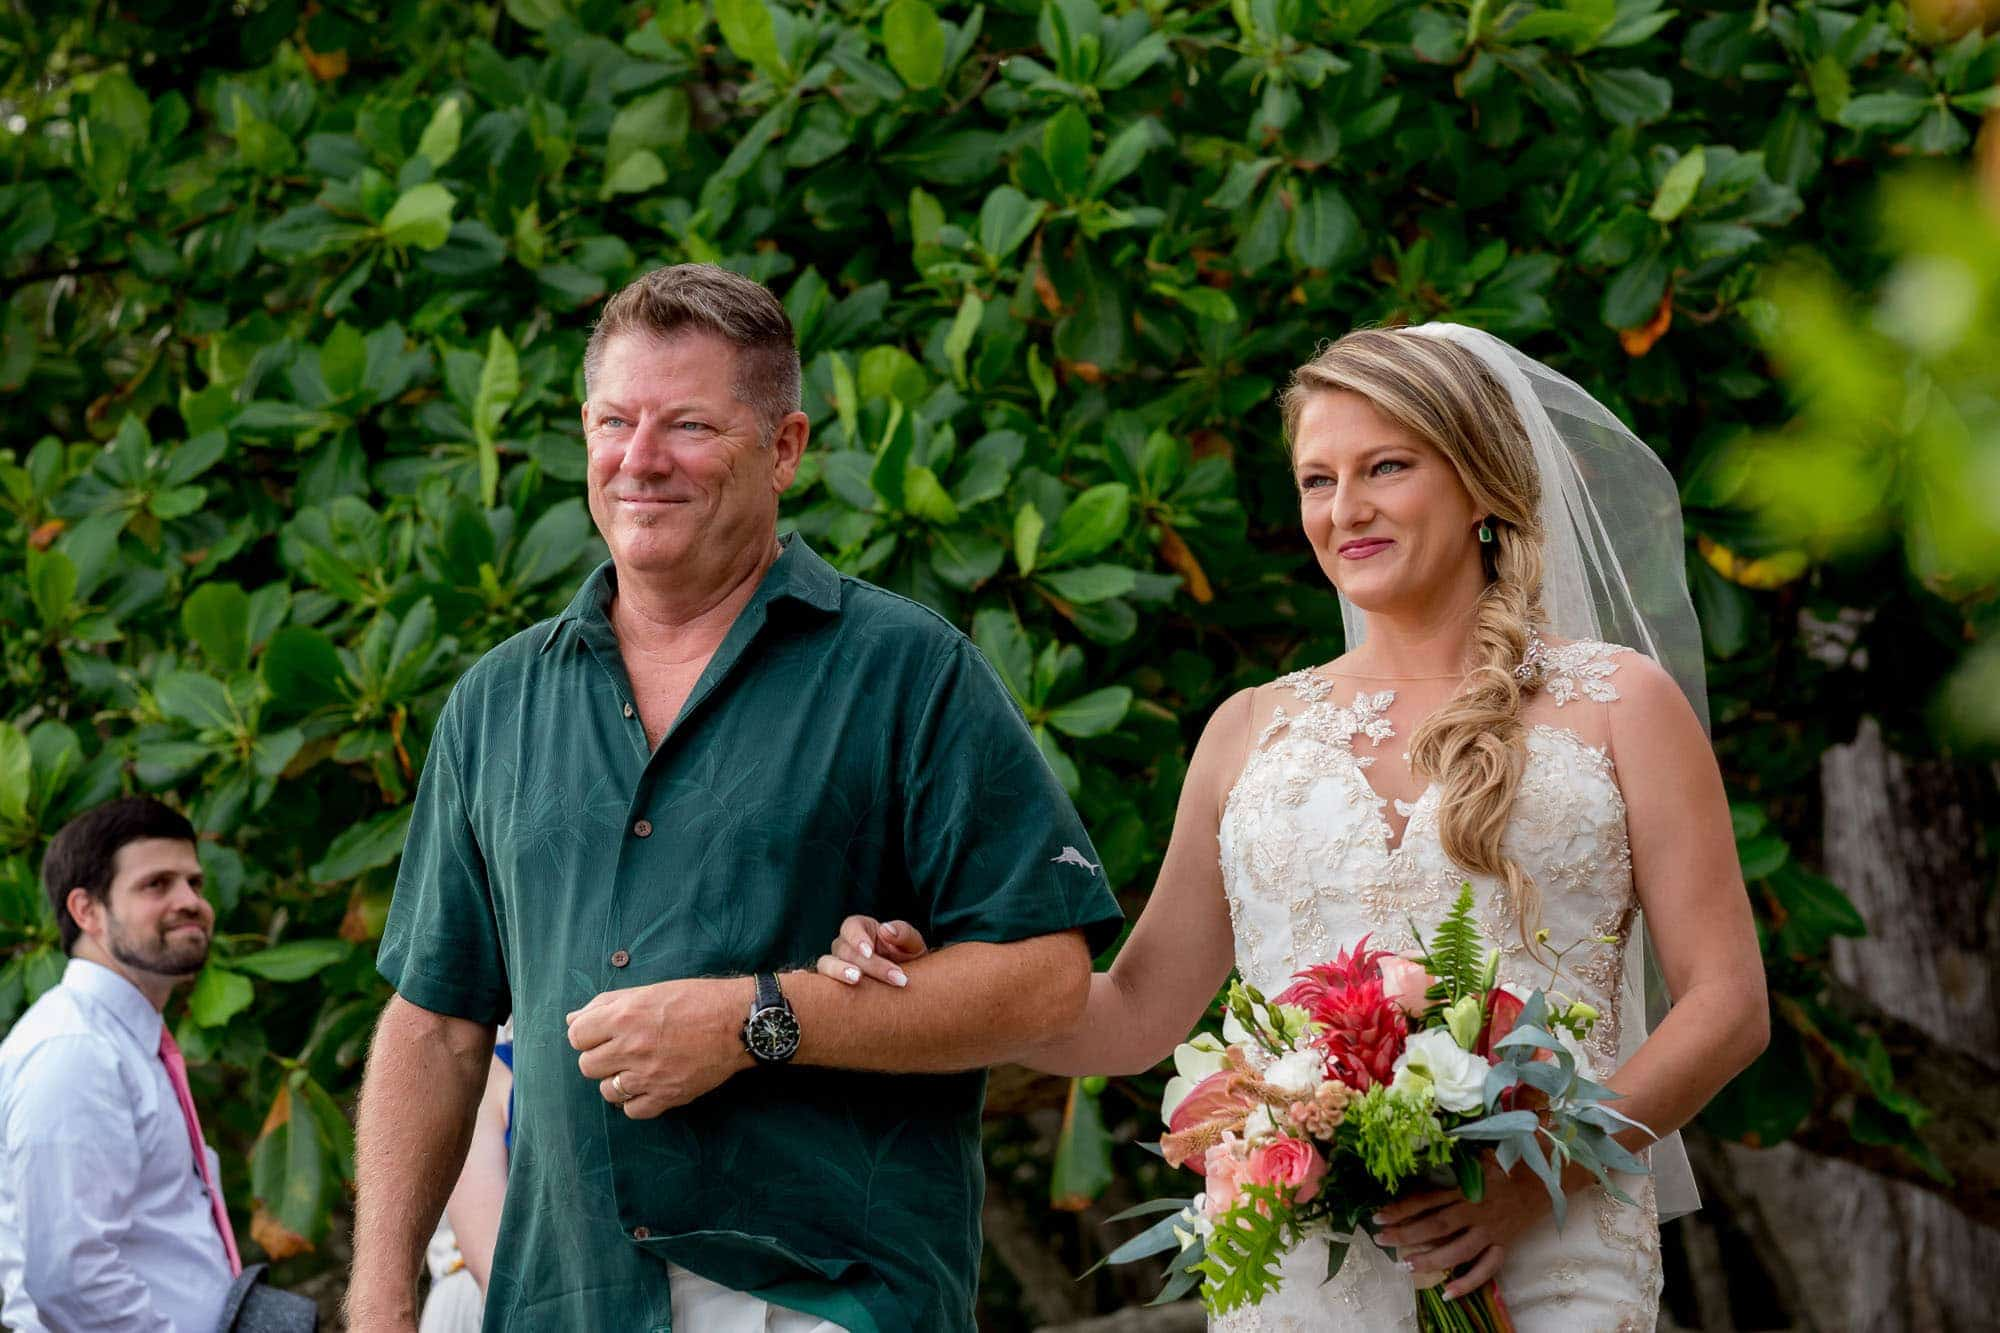 The bride entering with her dad